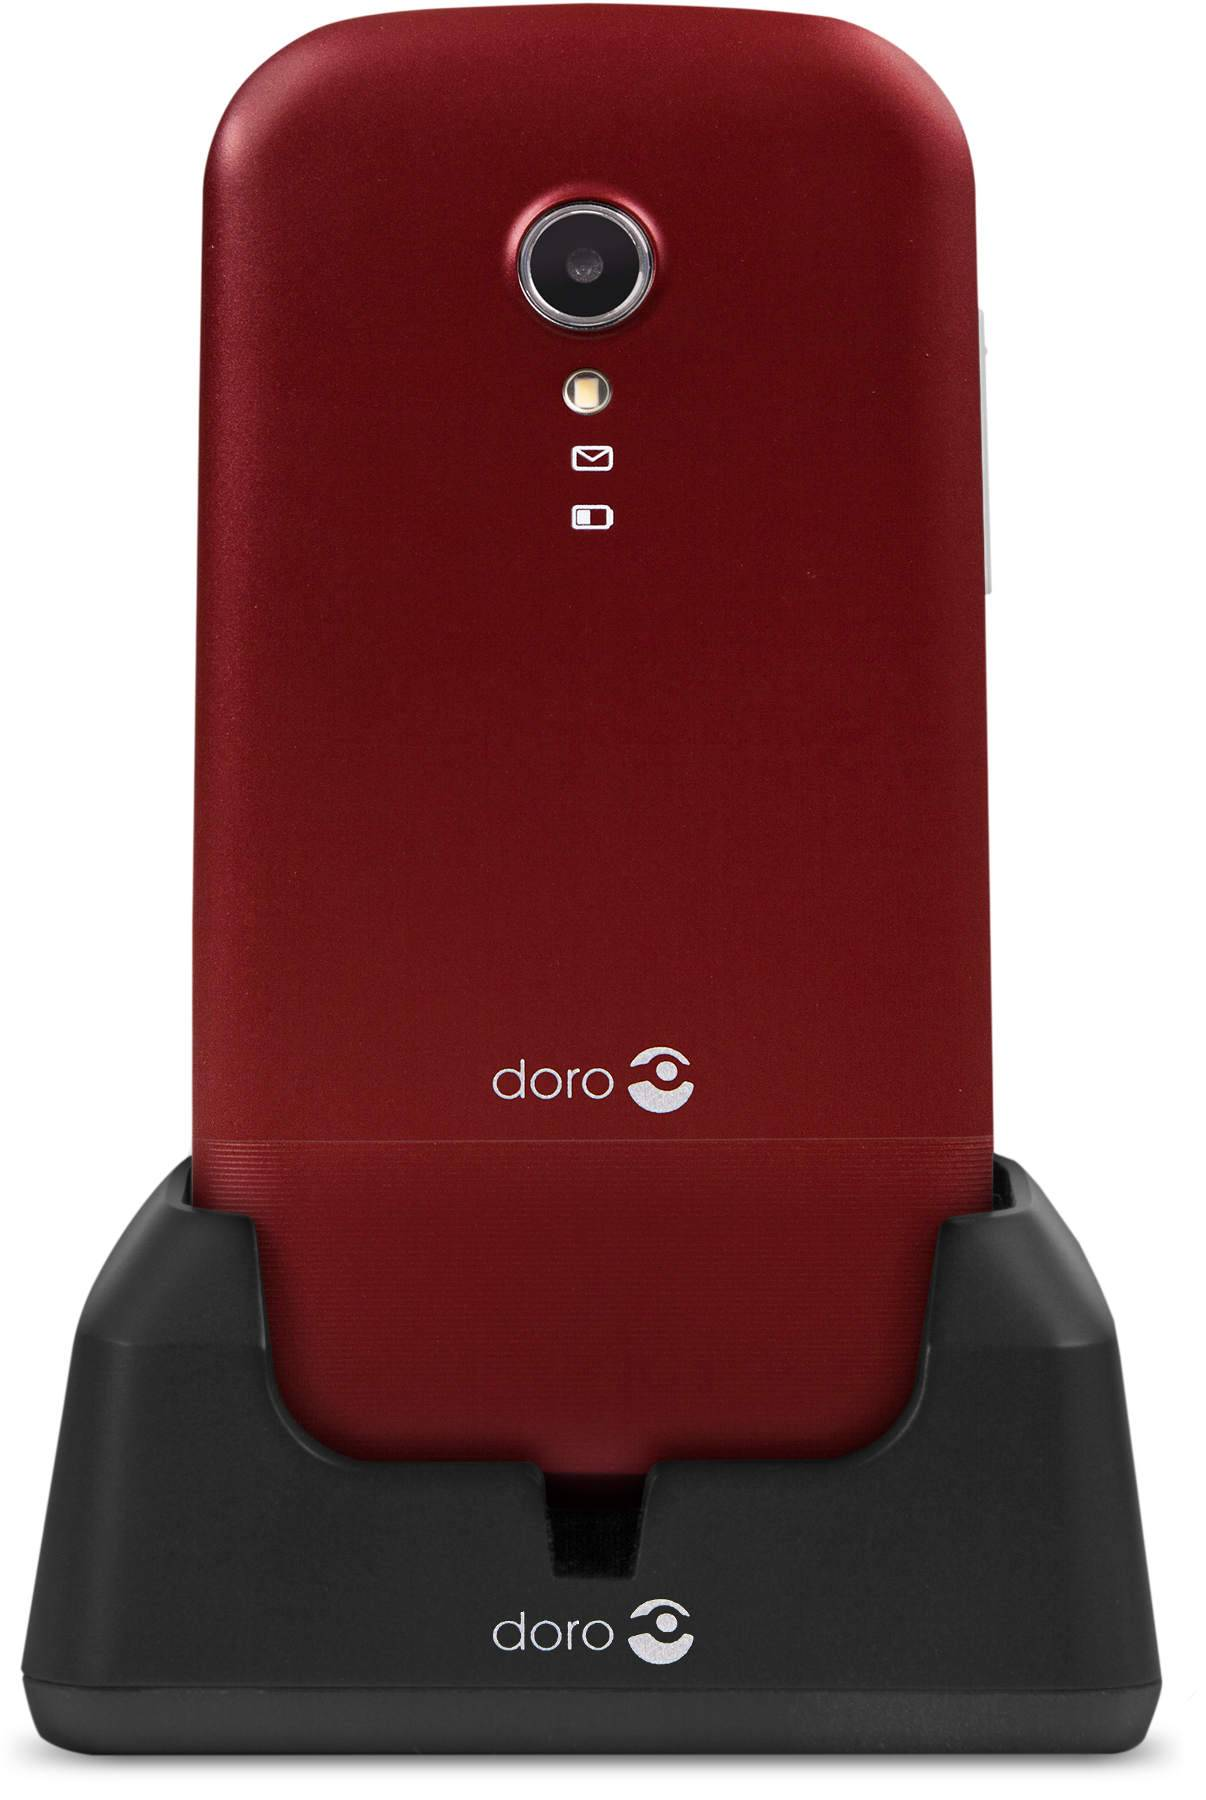 Doro Telephone-mobile DORO - 2404 ROUGE